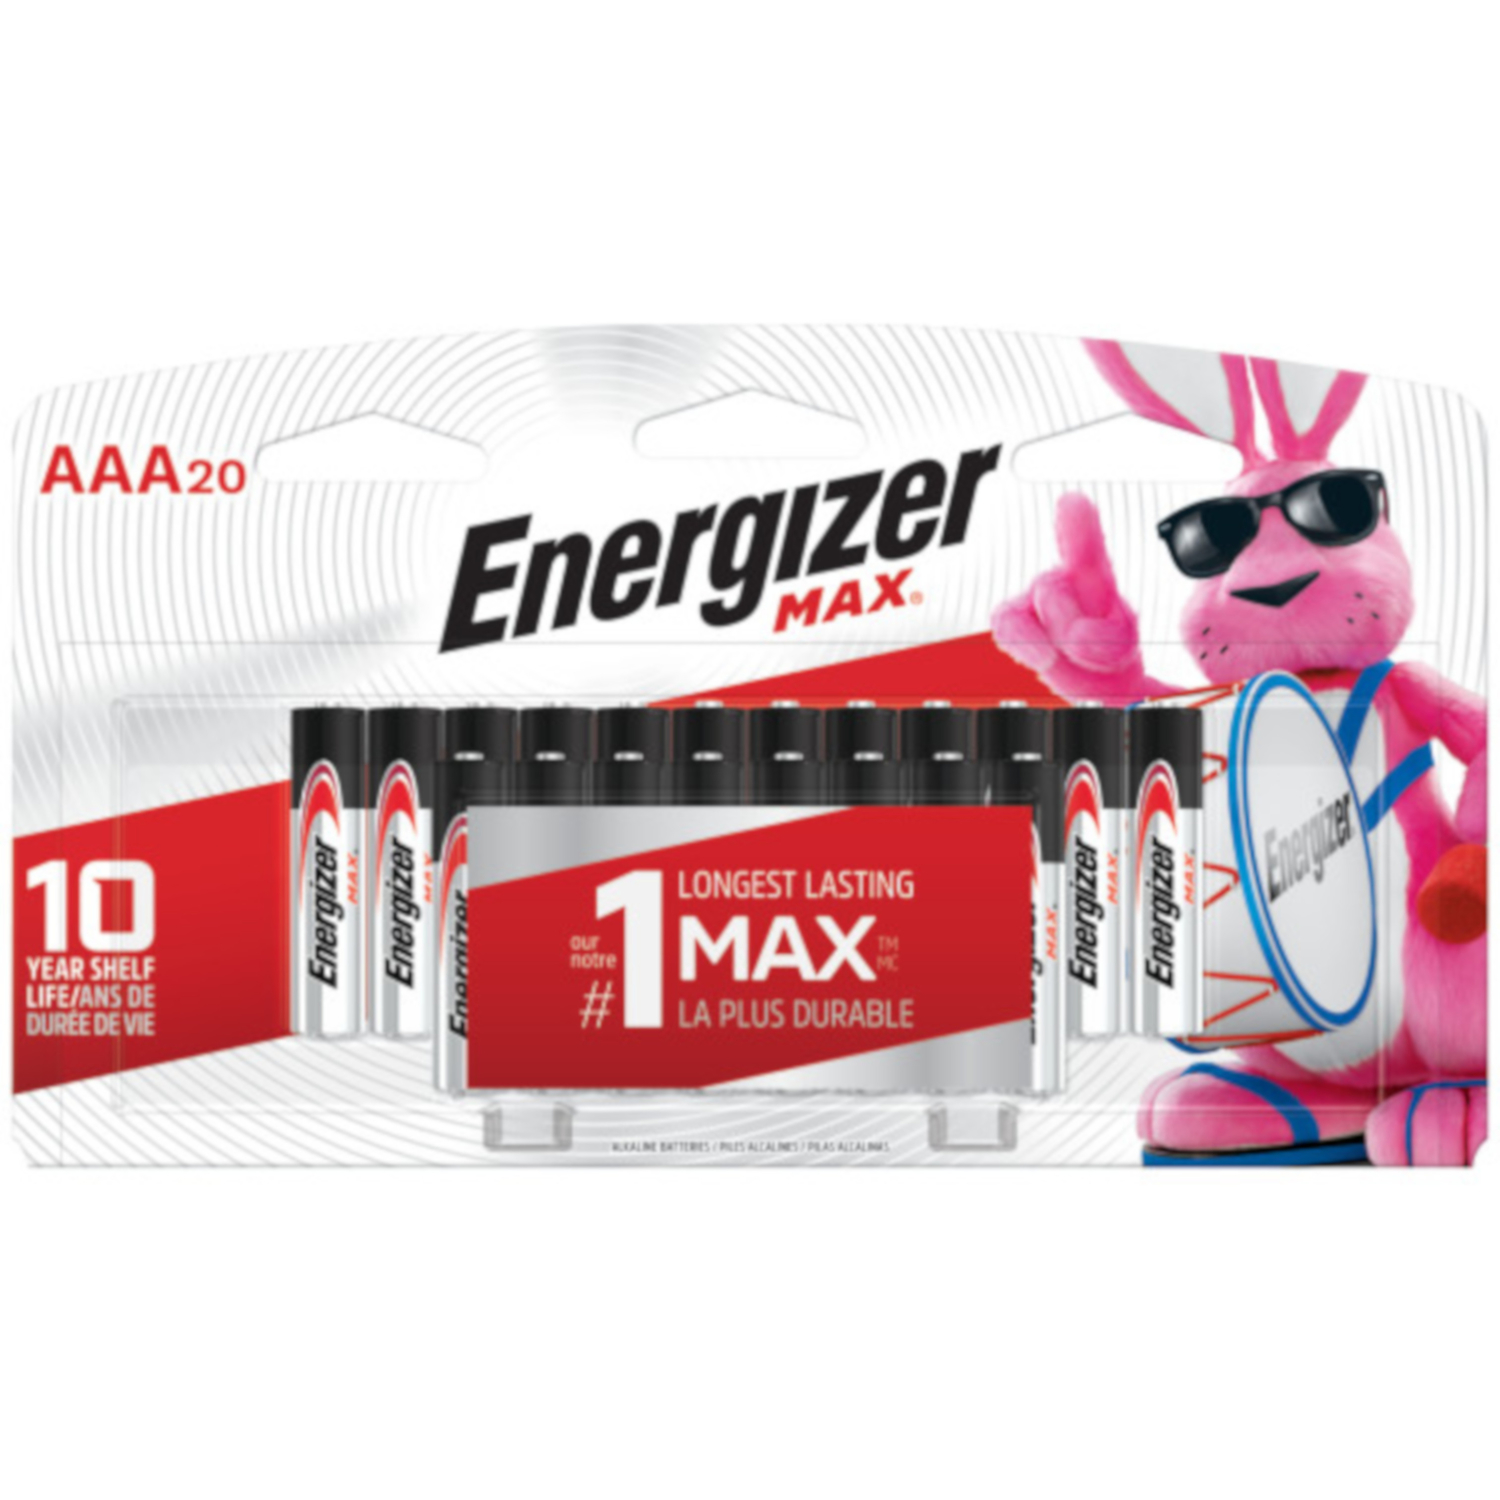 Energizer  MAX  AAA  Alkaline  Batteries  1.5 volts 20 pk Carded